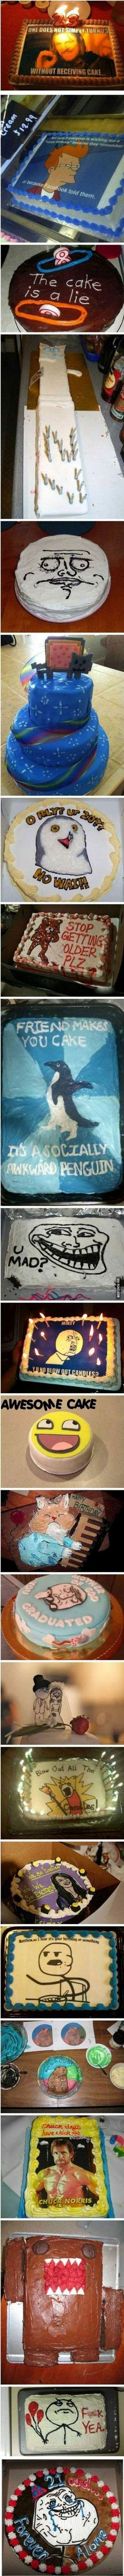 Awesome meme cakes!